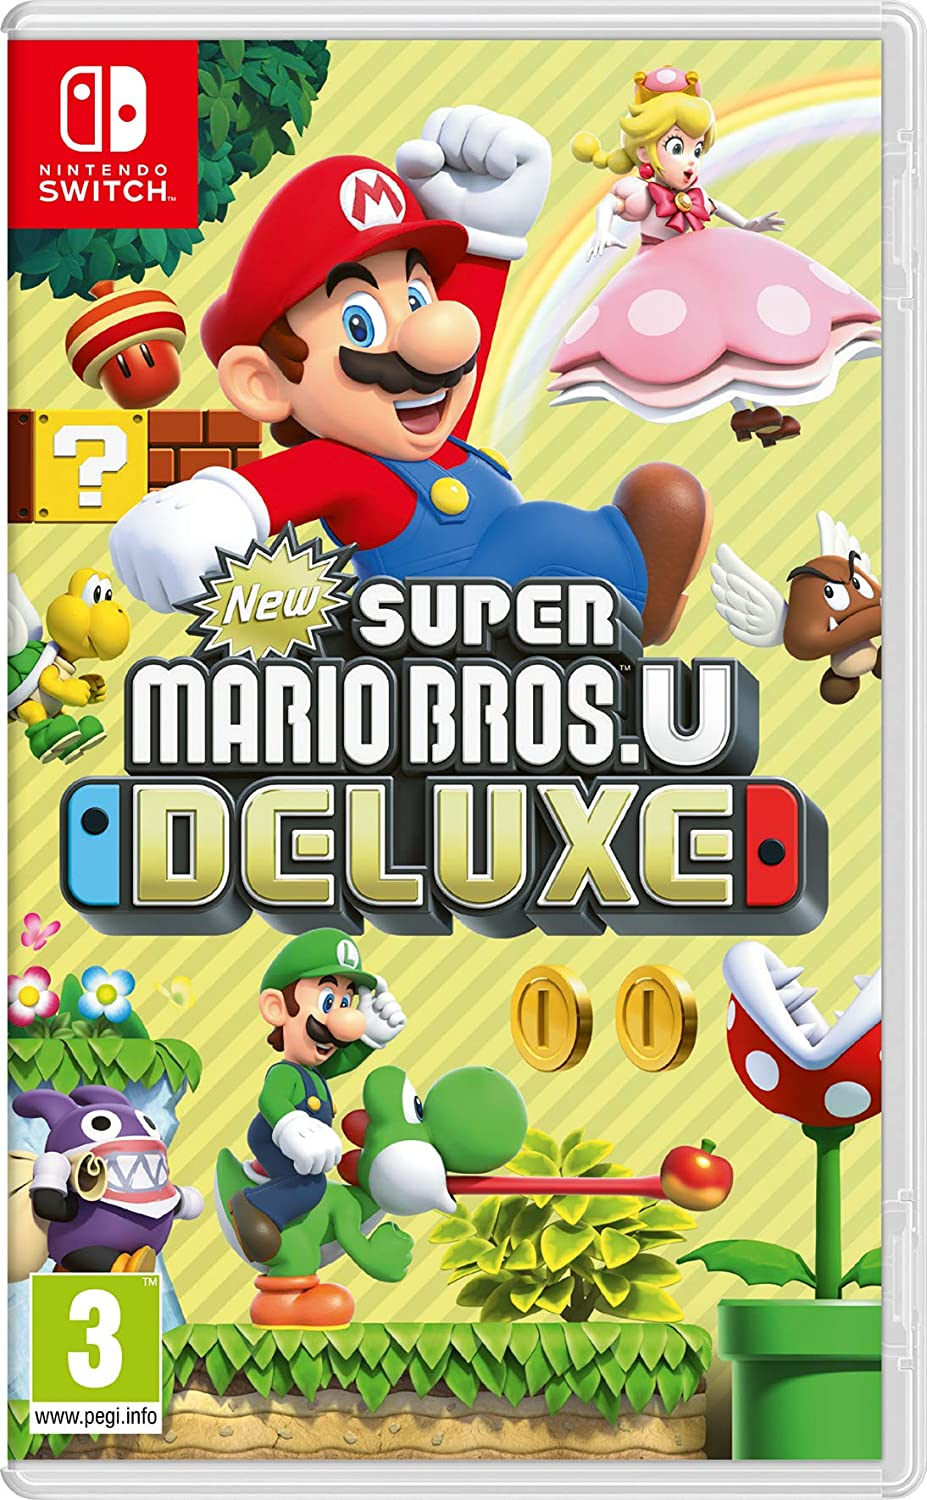 New Super Mario Bros. U Deluxe - Nintendo Switch [Importación francesa]: Amazon.es: Juguetes y juegos